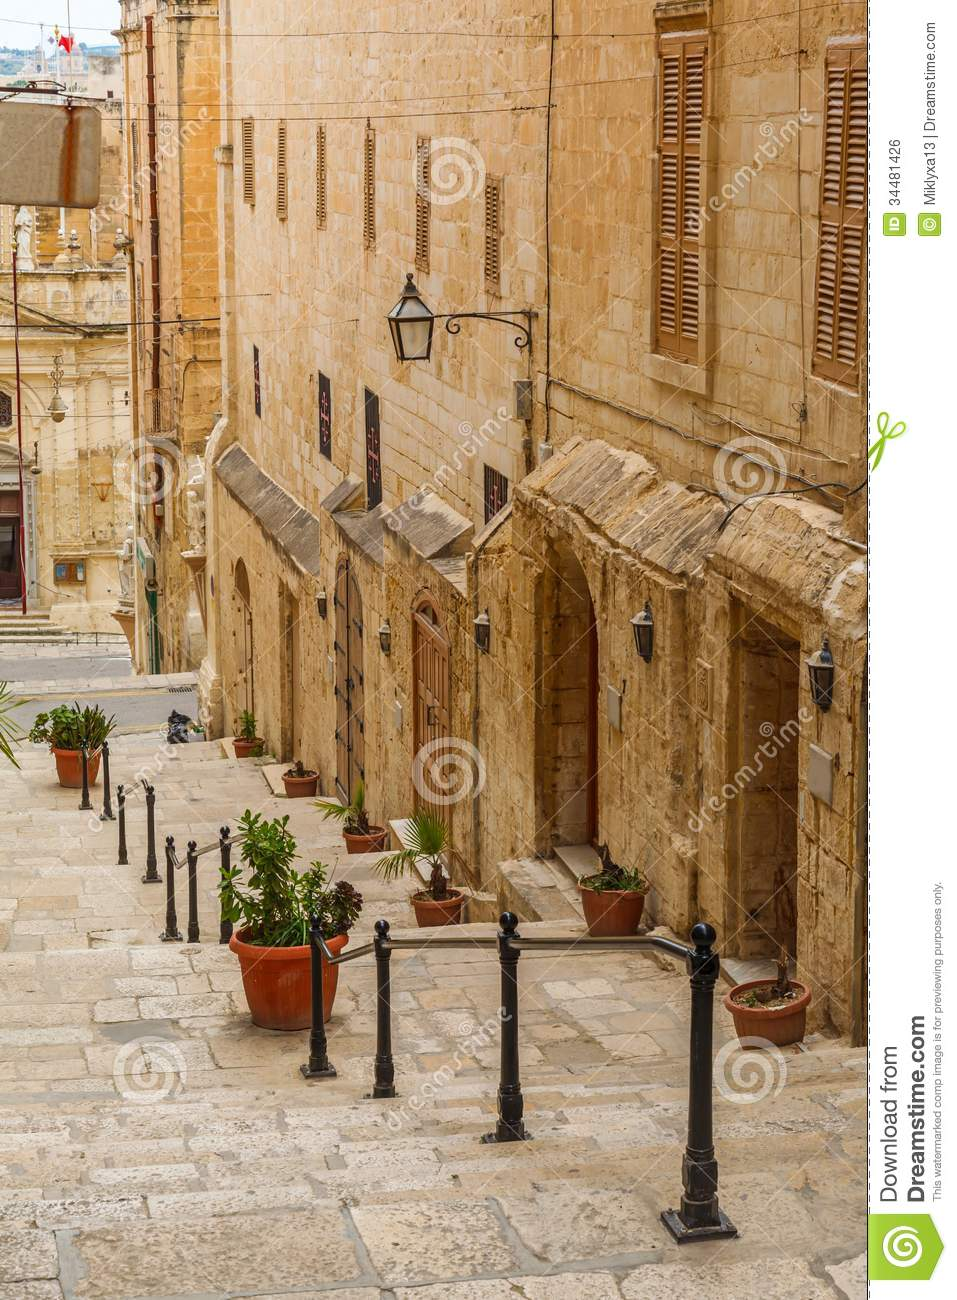 malta old alley houses - photo #44